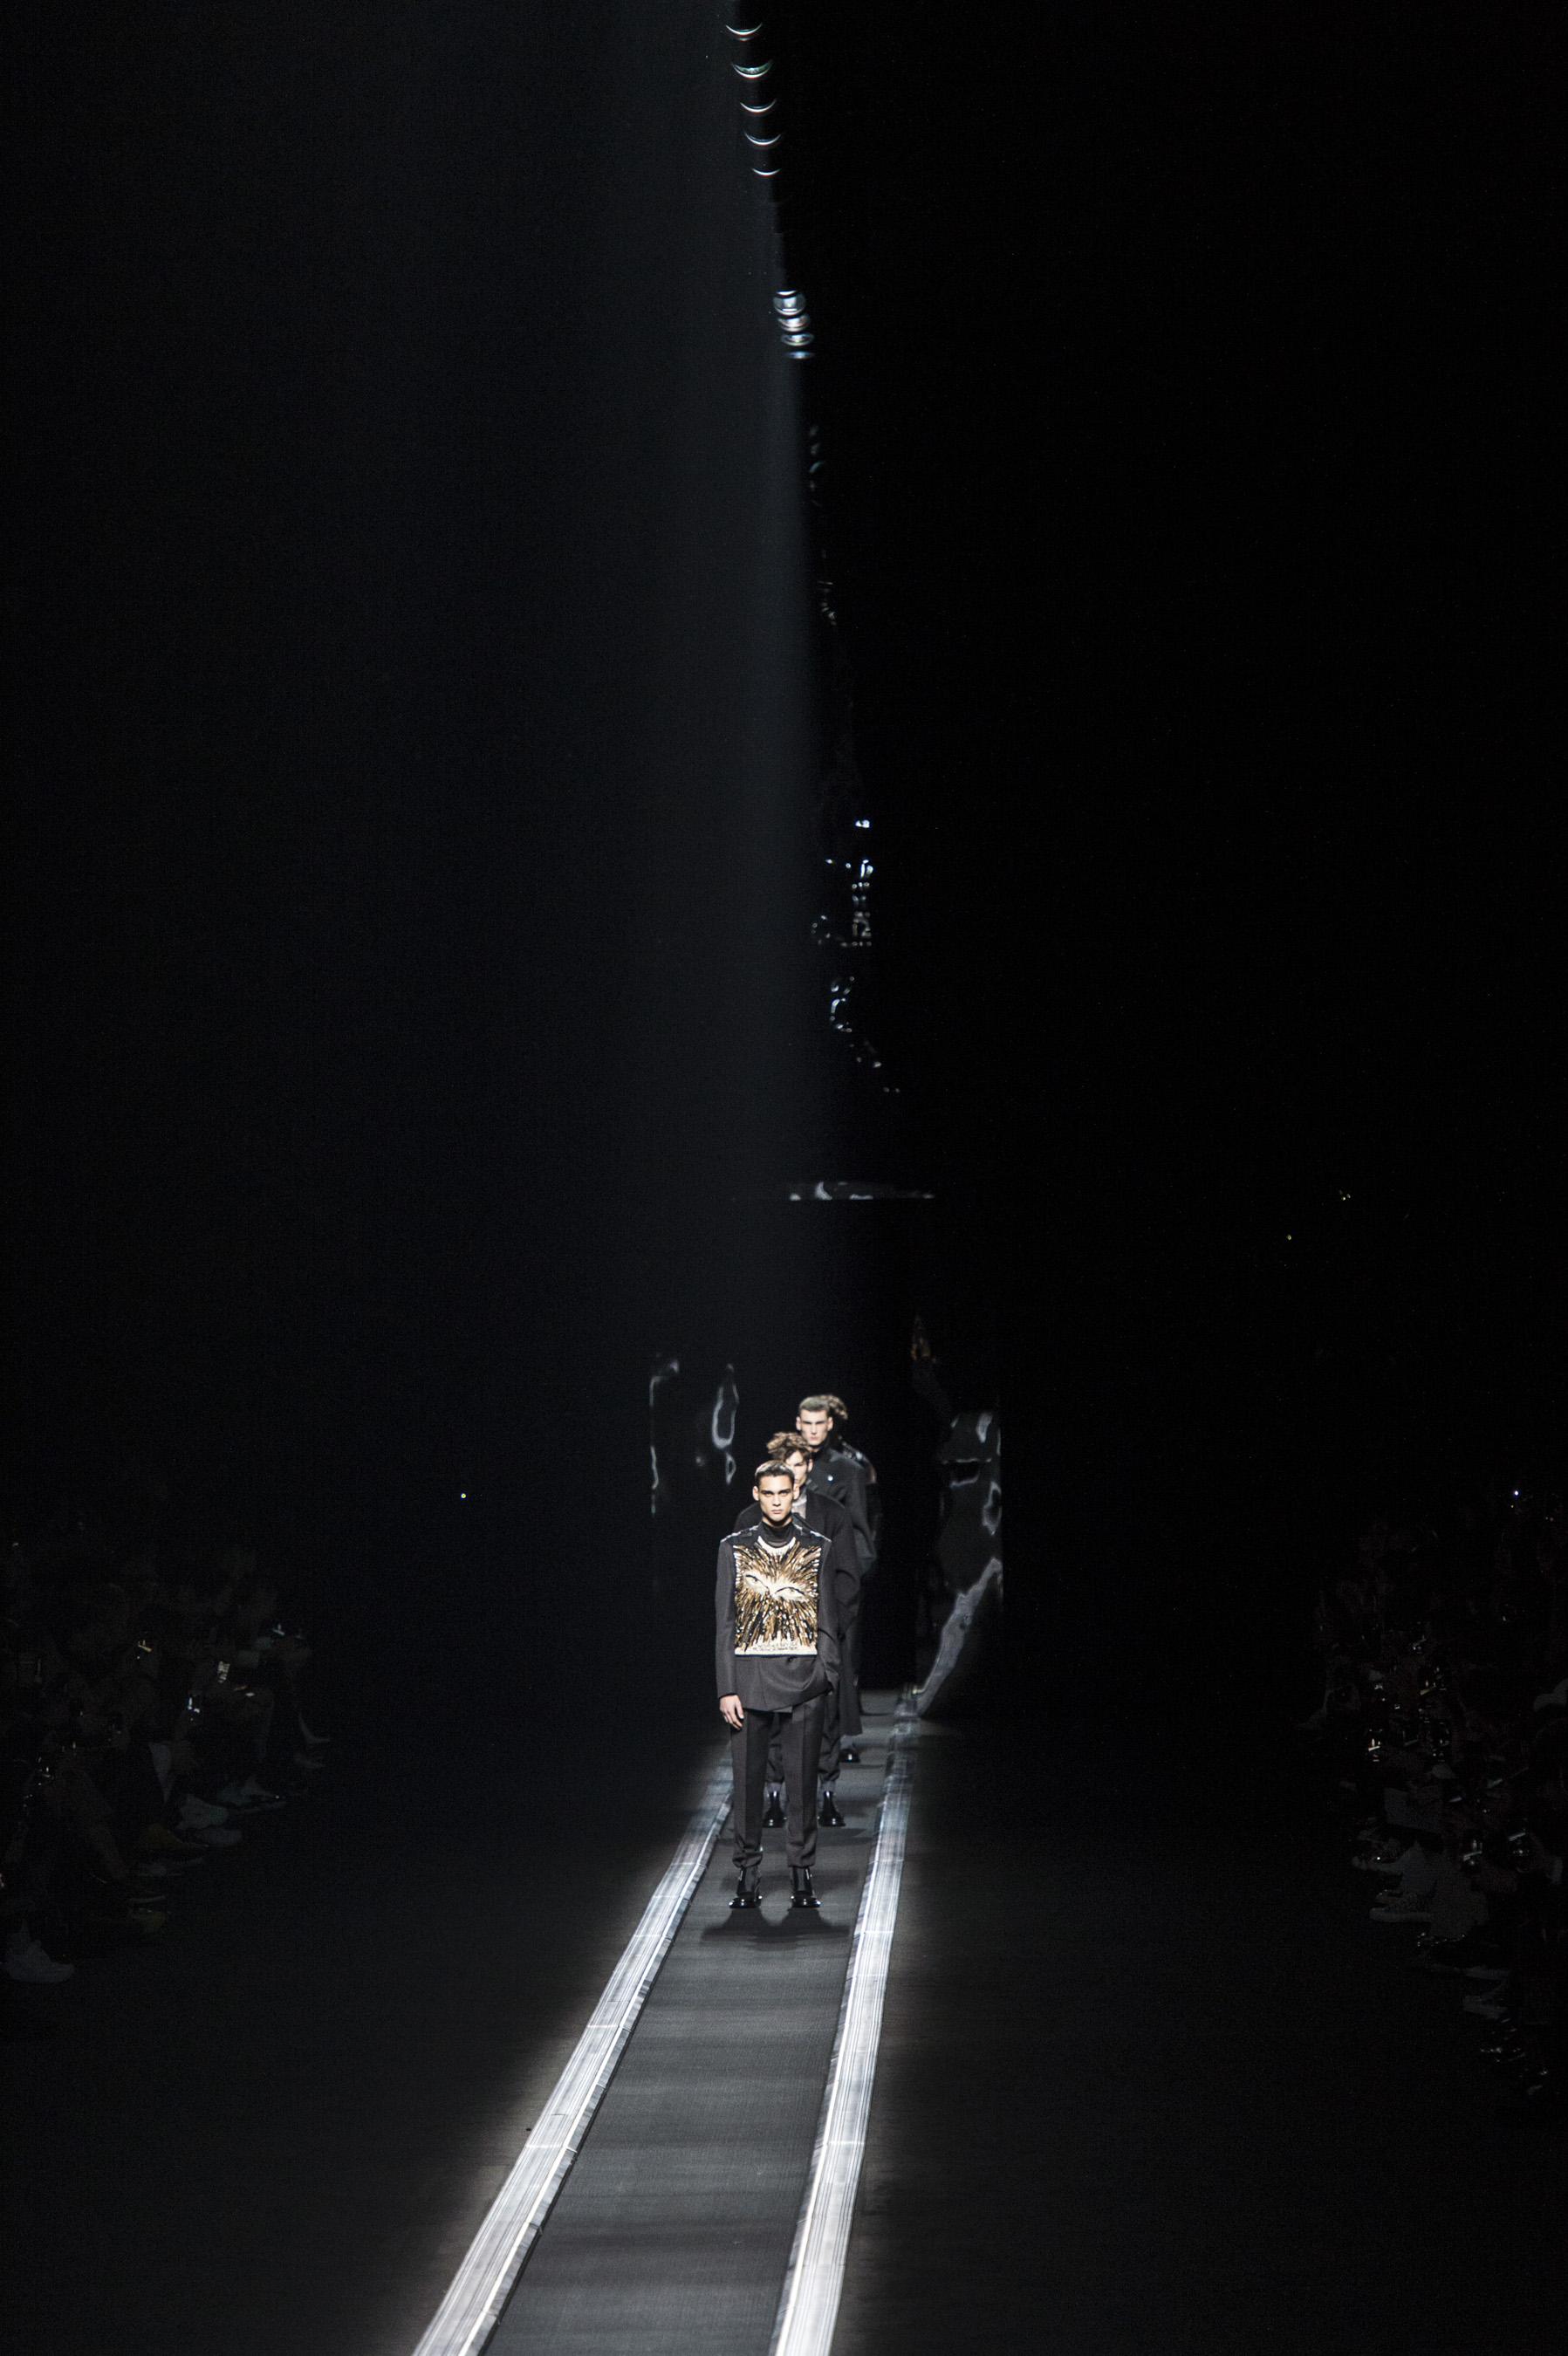 Dior Homme Fall 2019 Men's Fashion Show Atmosphere